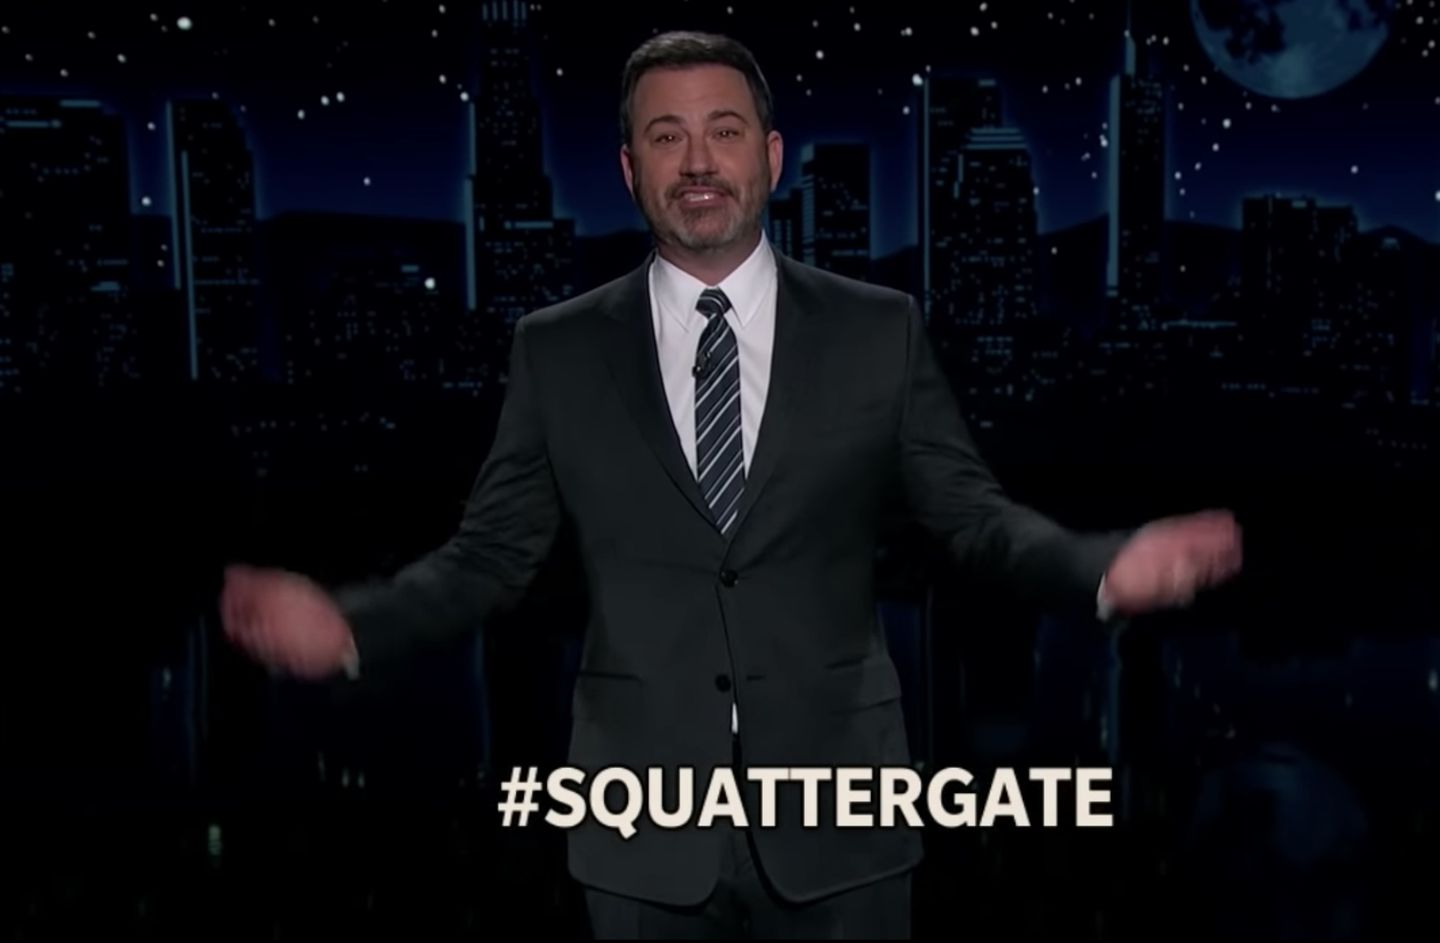 Day 20 Of Squattergate Kimmel Other Late Night Hosts Weigh In On Continuing Election Saga The Boston Globe Read the latest headlines, news stories, and opinion from politics, entertainment, life, perspectives, and more. late night hosts weigh